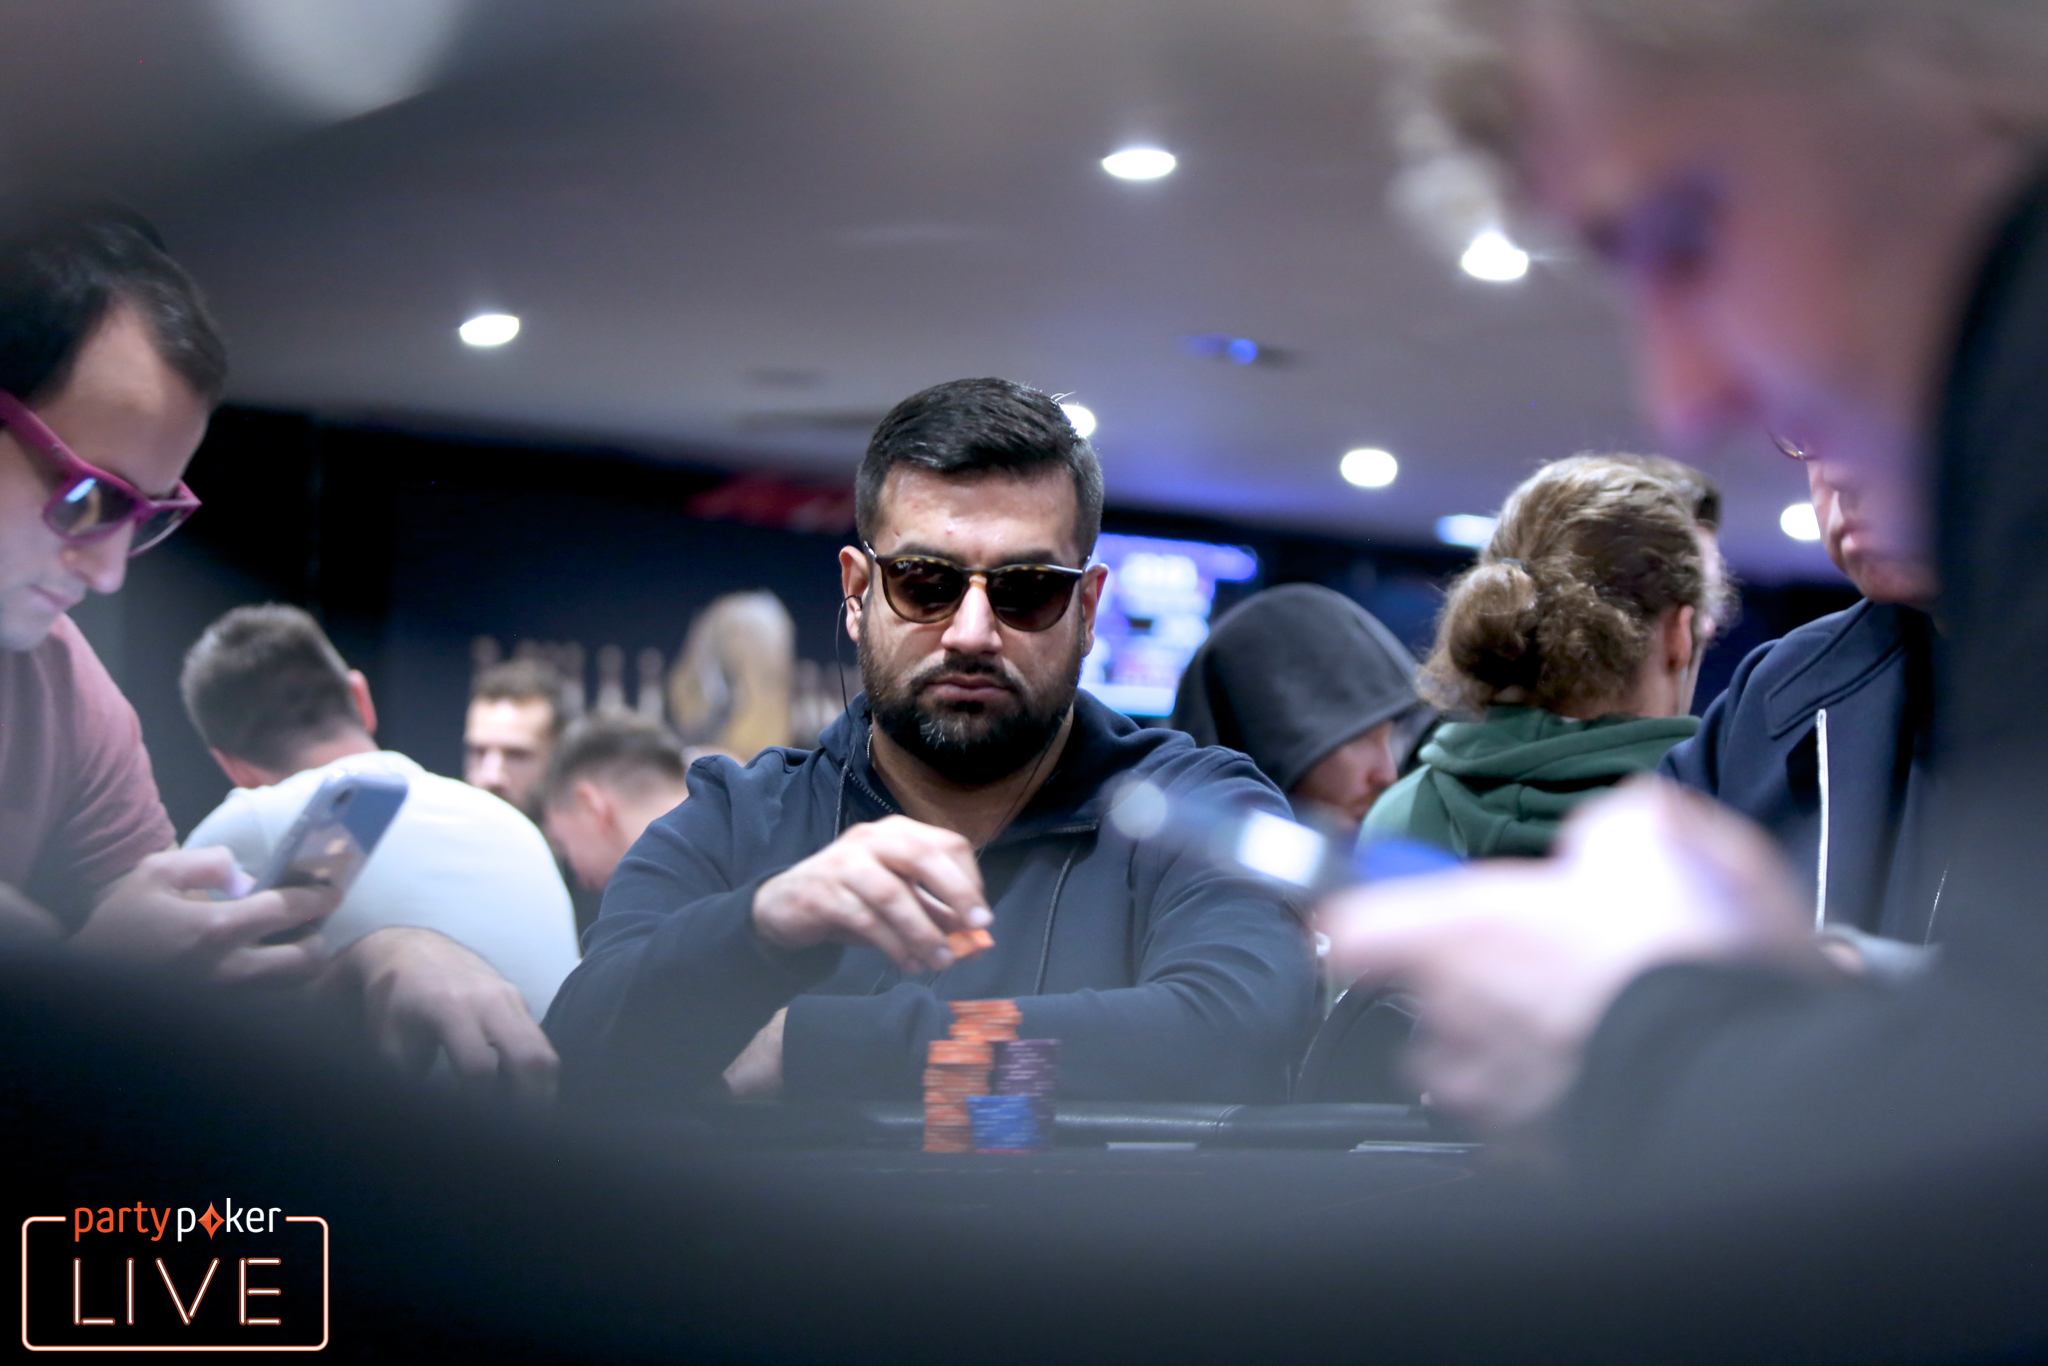 Kully Sidhu (photo: Mickey May/partypoker)